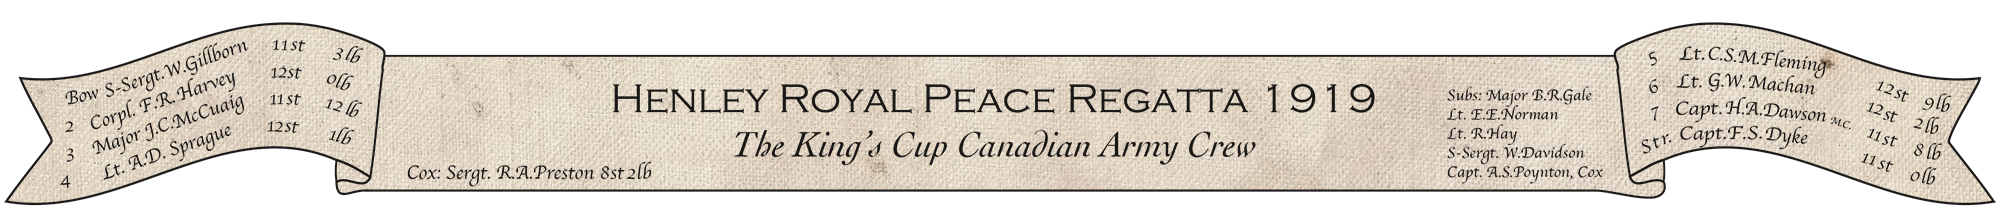 Canadian-Army-1919-copy.png